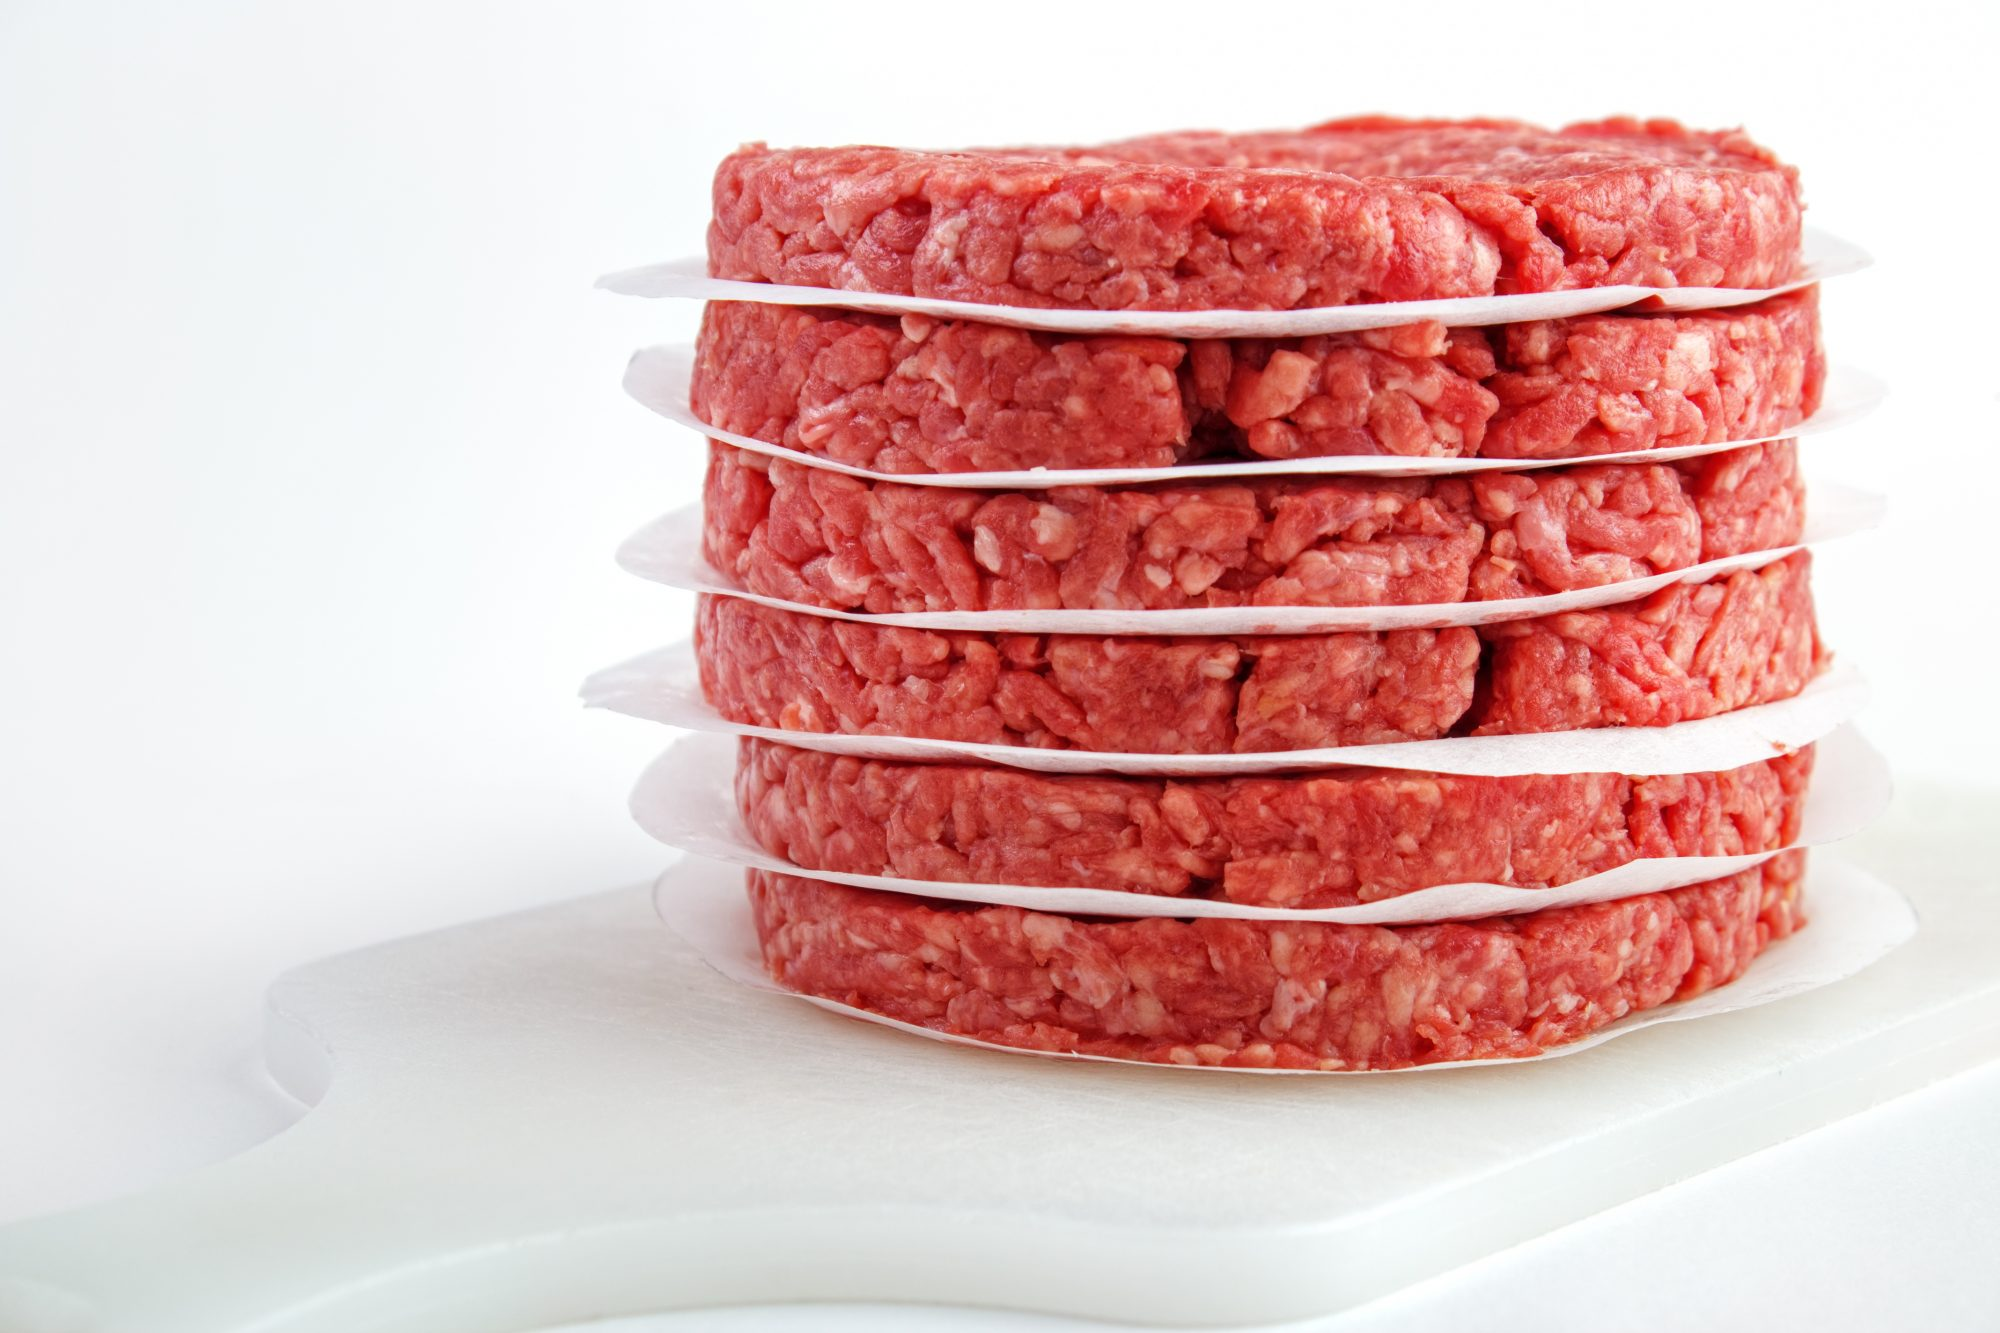 Raw hamburger patties Getty 7/15/20